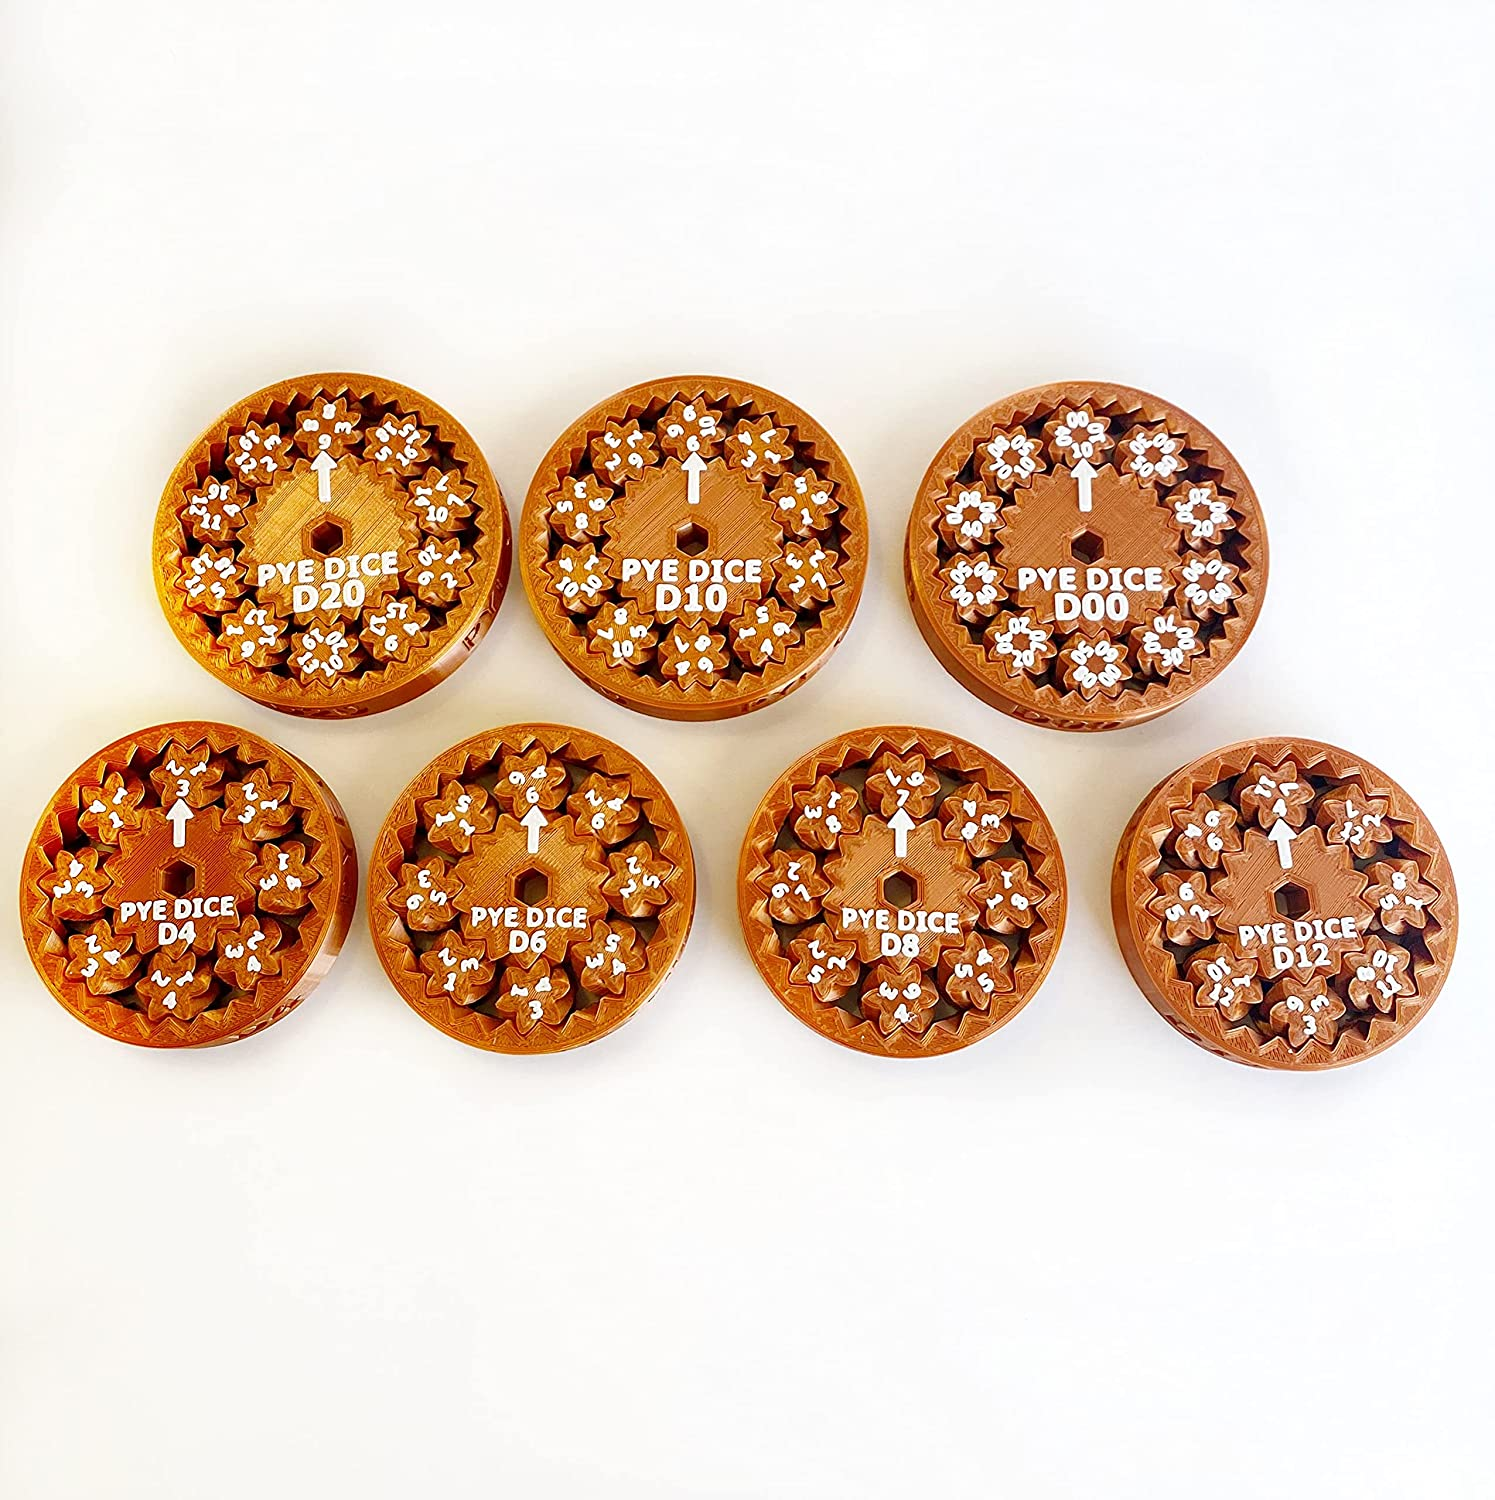 7-Piece Spin Max 43% OFF At the price Dice Copper Set: